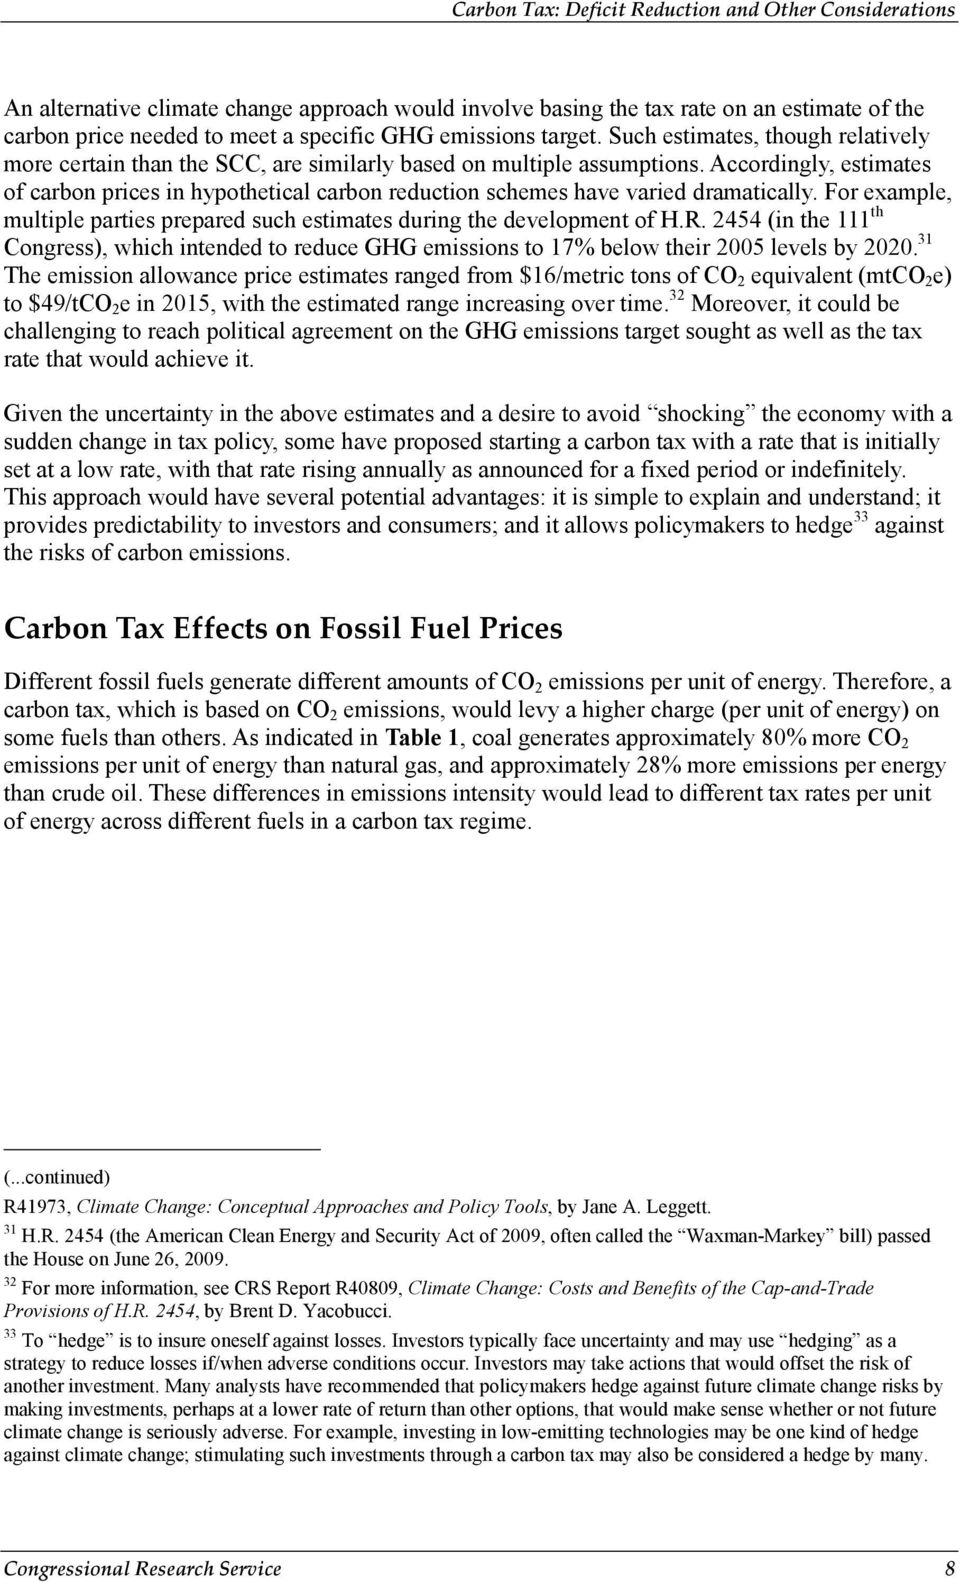 Accordingly, estimates of carbon prices in hypothetical carbon reduction schemes have varied dramatically. For example, multiple parties prepared such estimates during the development of H.R.